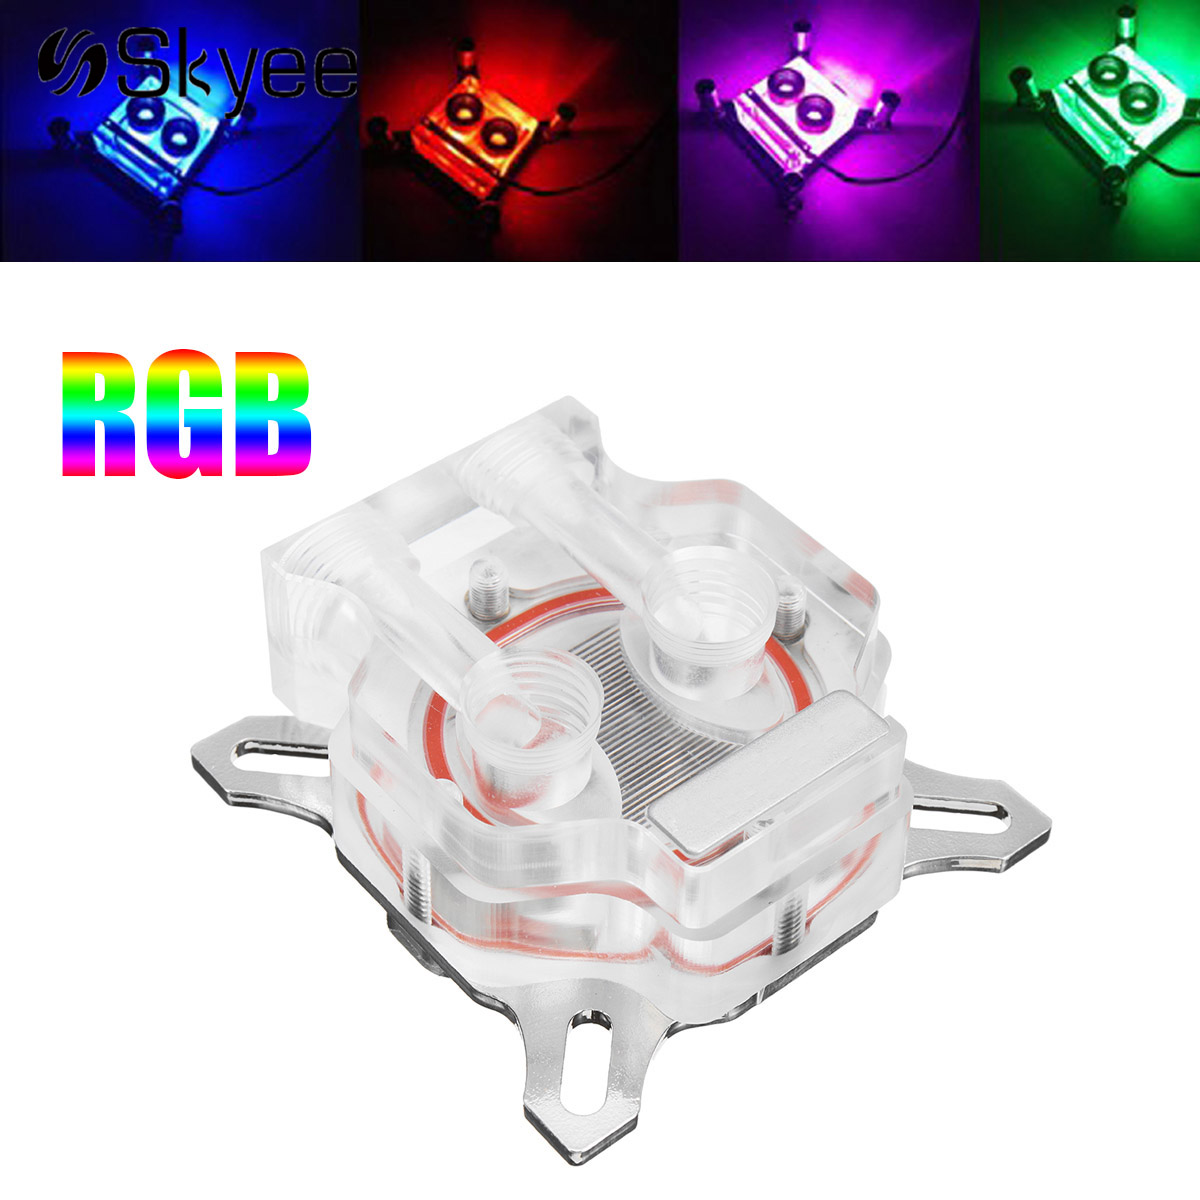 RGB Control Water Cooling Block Video Card GPU Core Cover Water Heatsink Suitable for 43mm-53mm Hole Pitch VGA-TMD Support AURA sapphire r9 370 gpu cooler video cards fan for radeon sapphire r9 370 1024sp 4g 2g v2 oc graphics card cooling